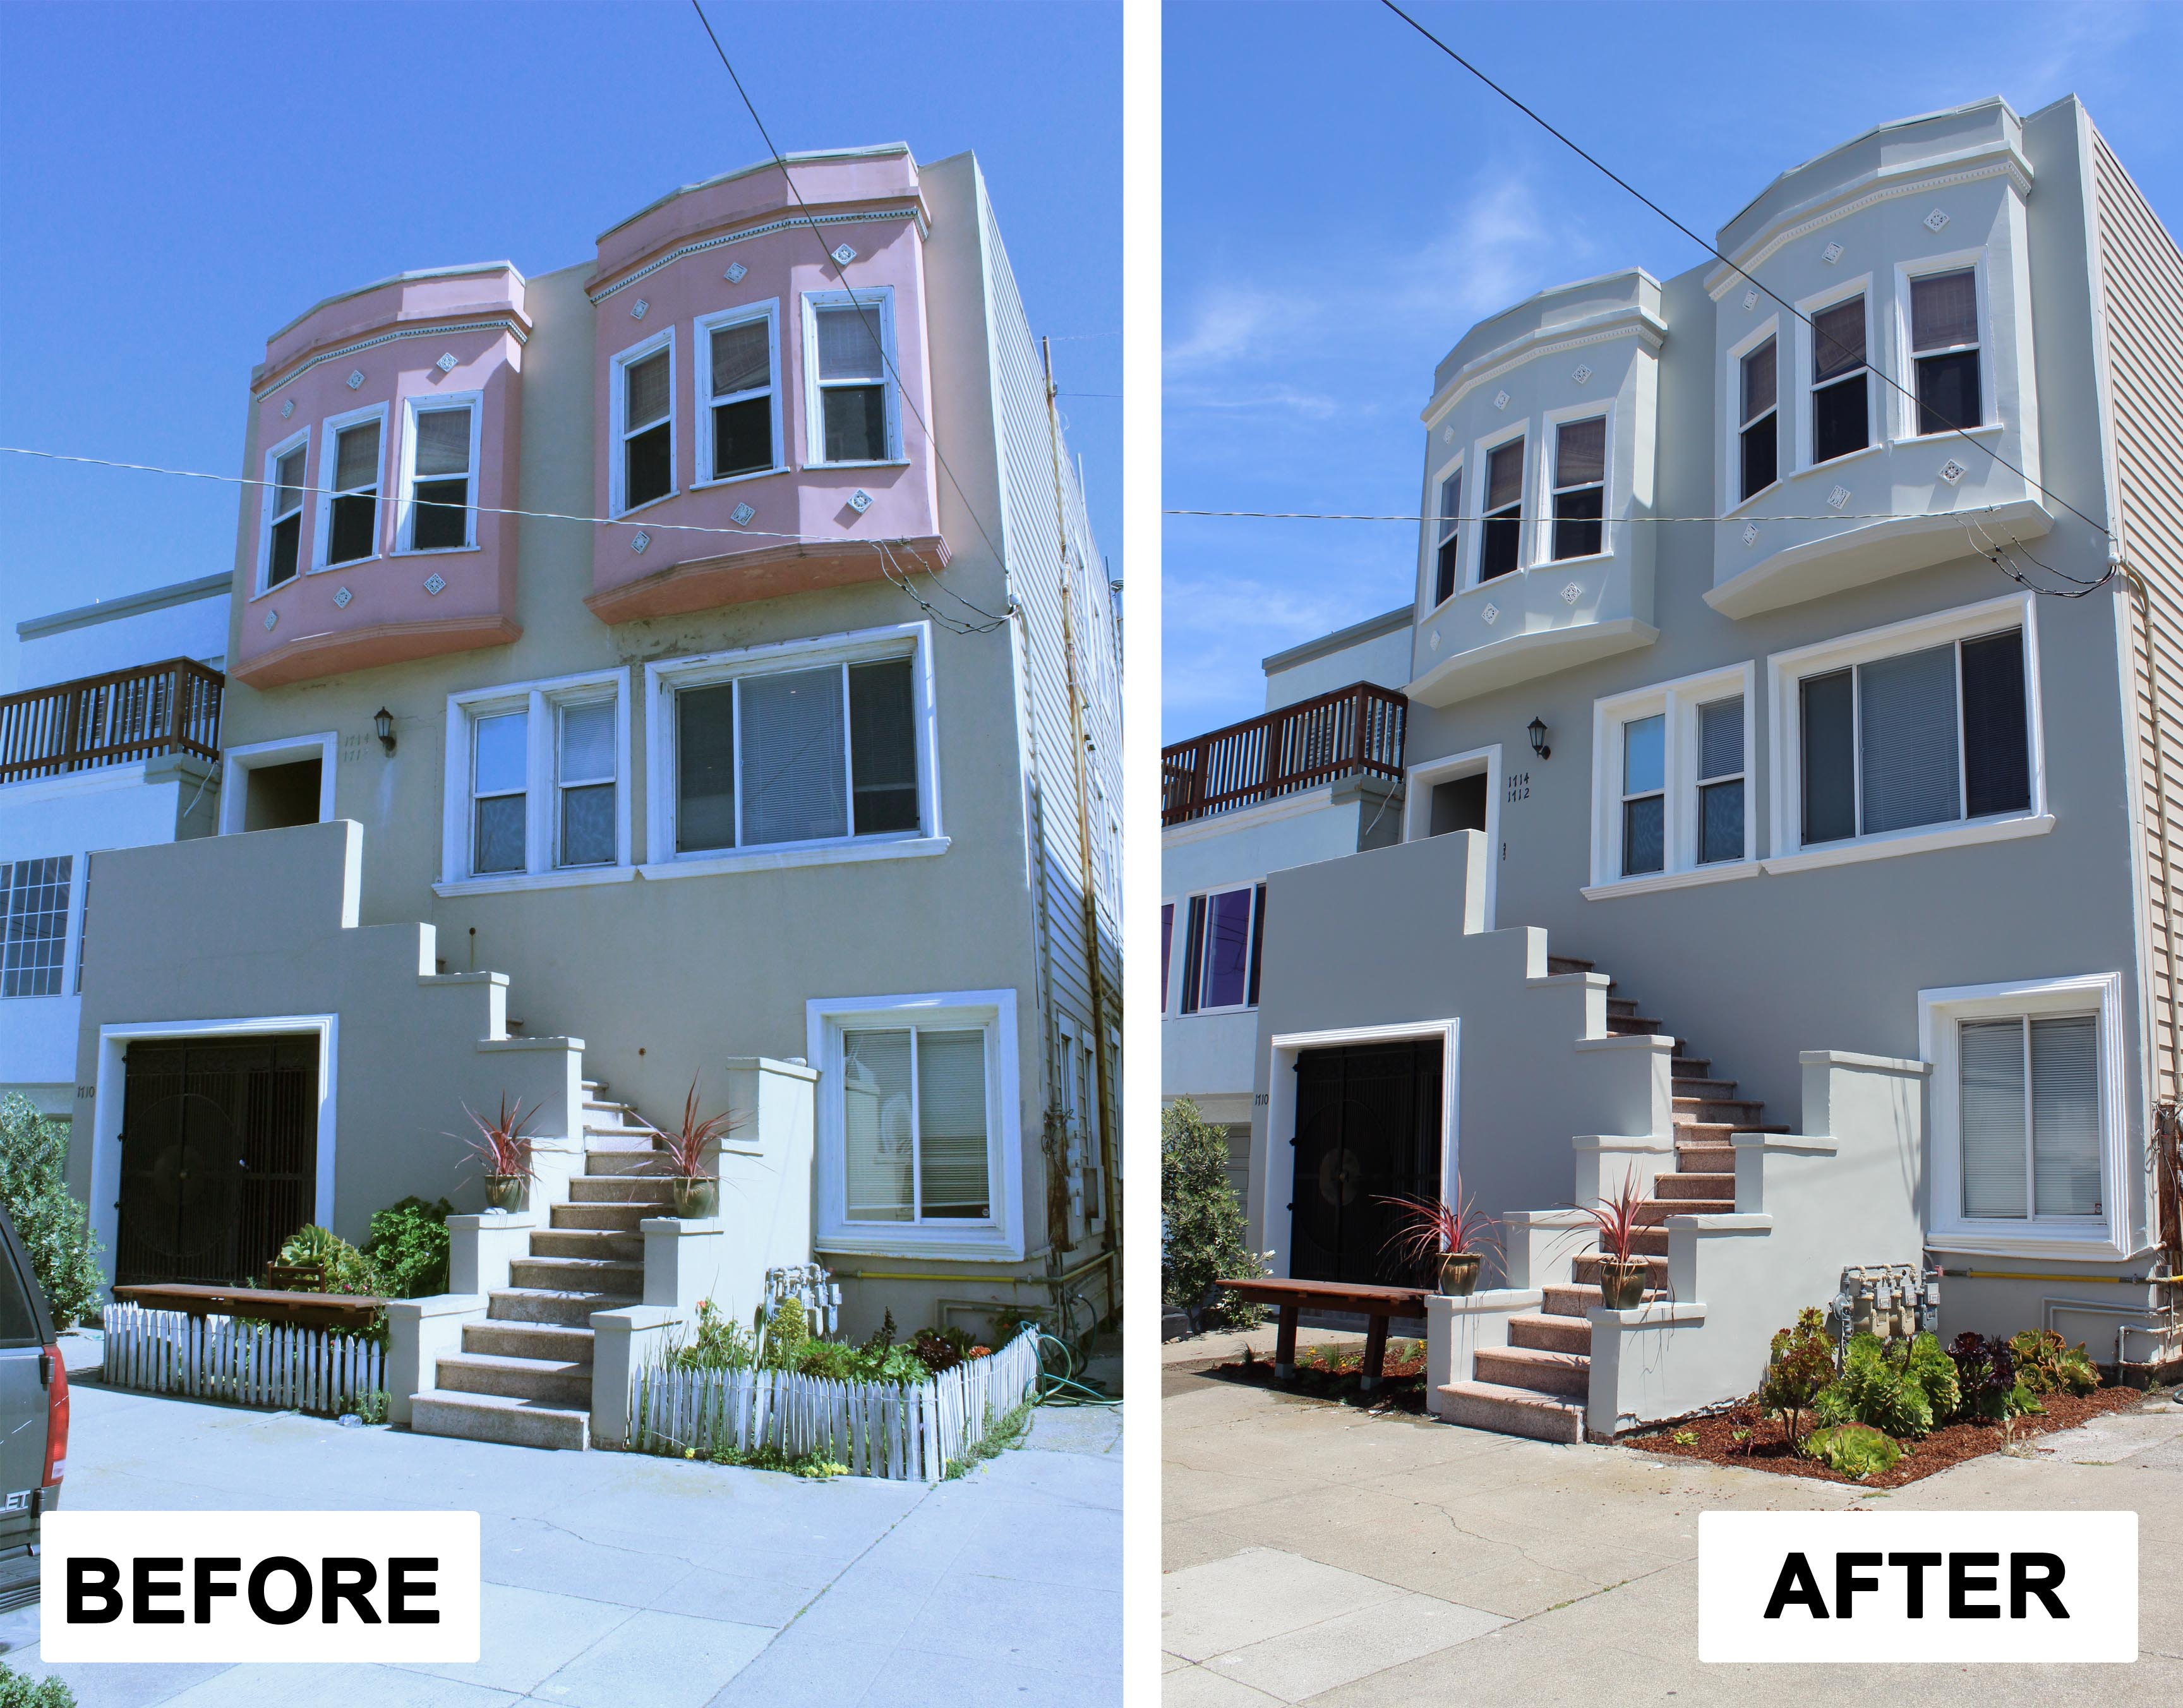 Before After Facade Meryl And Miller Llc